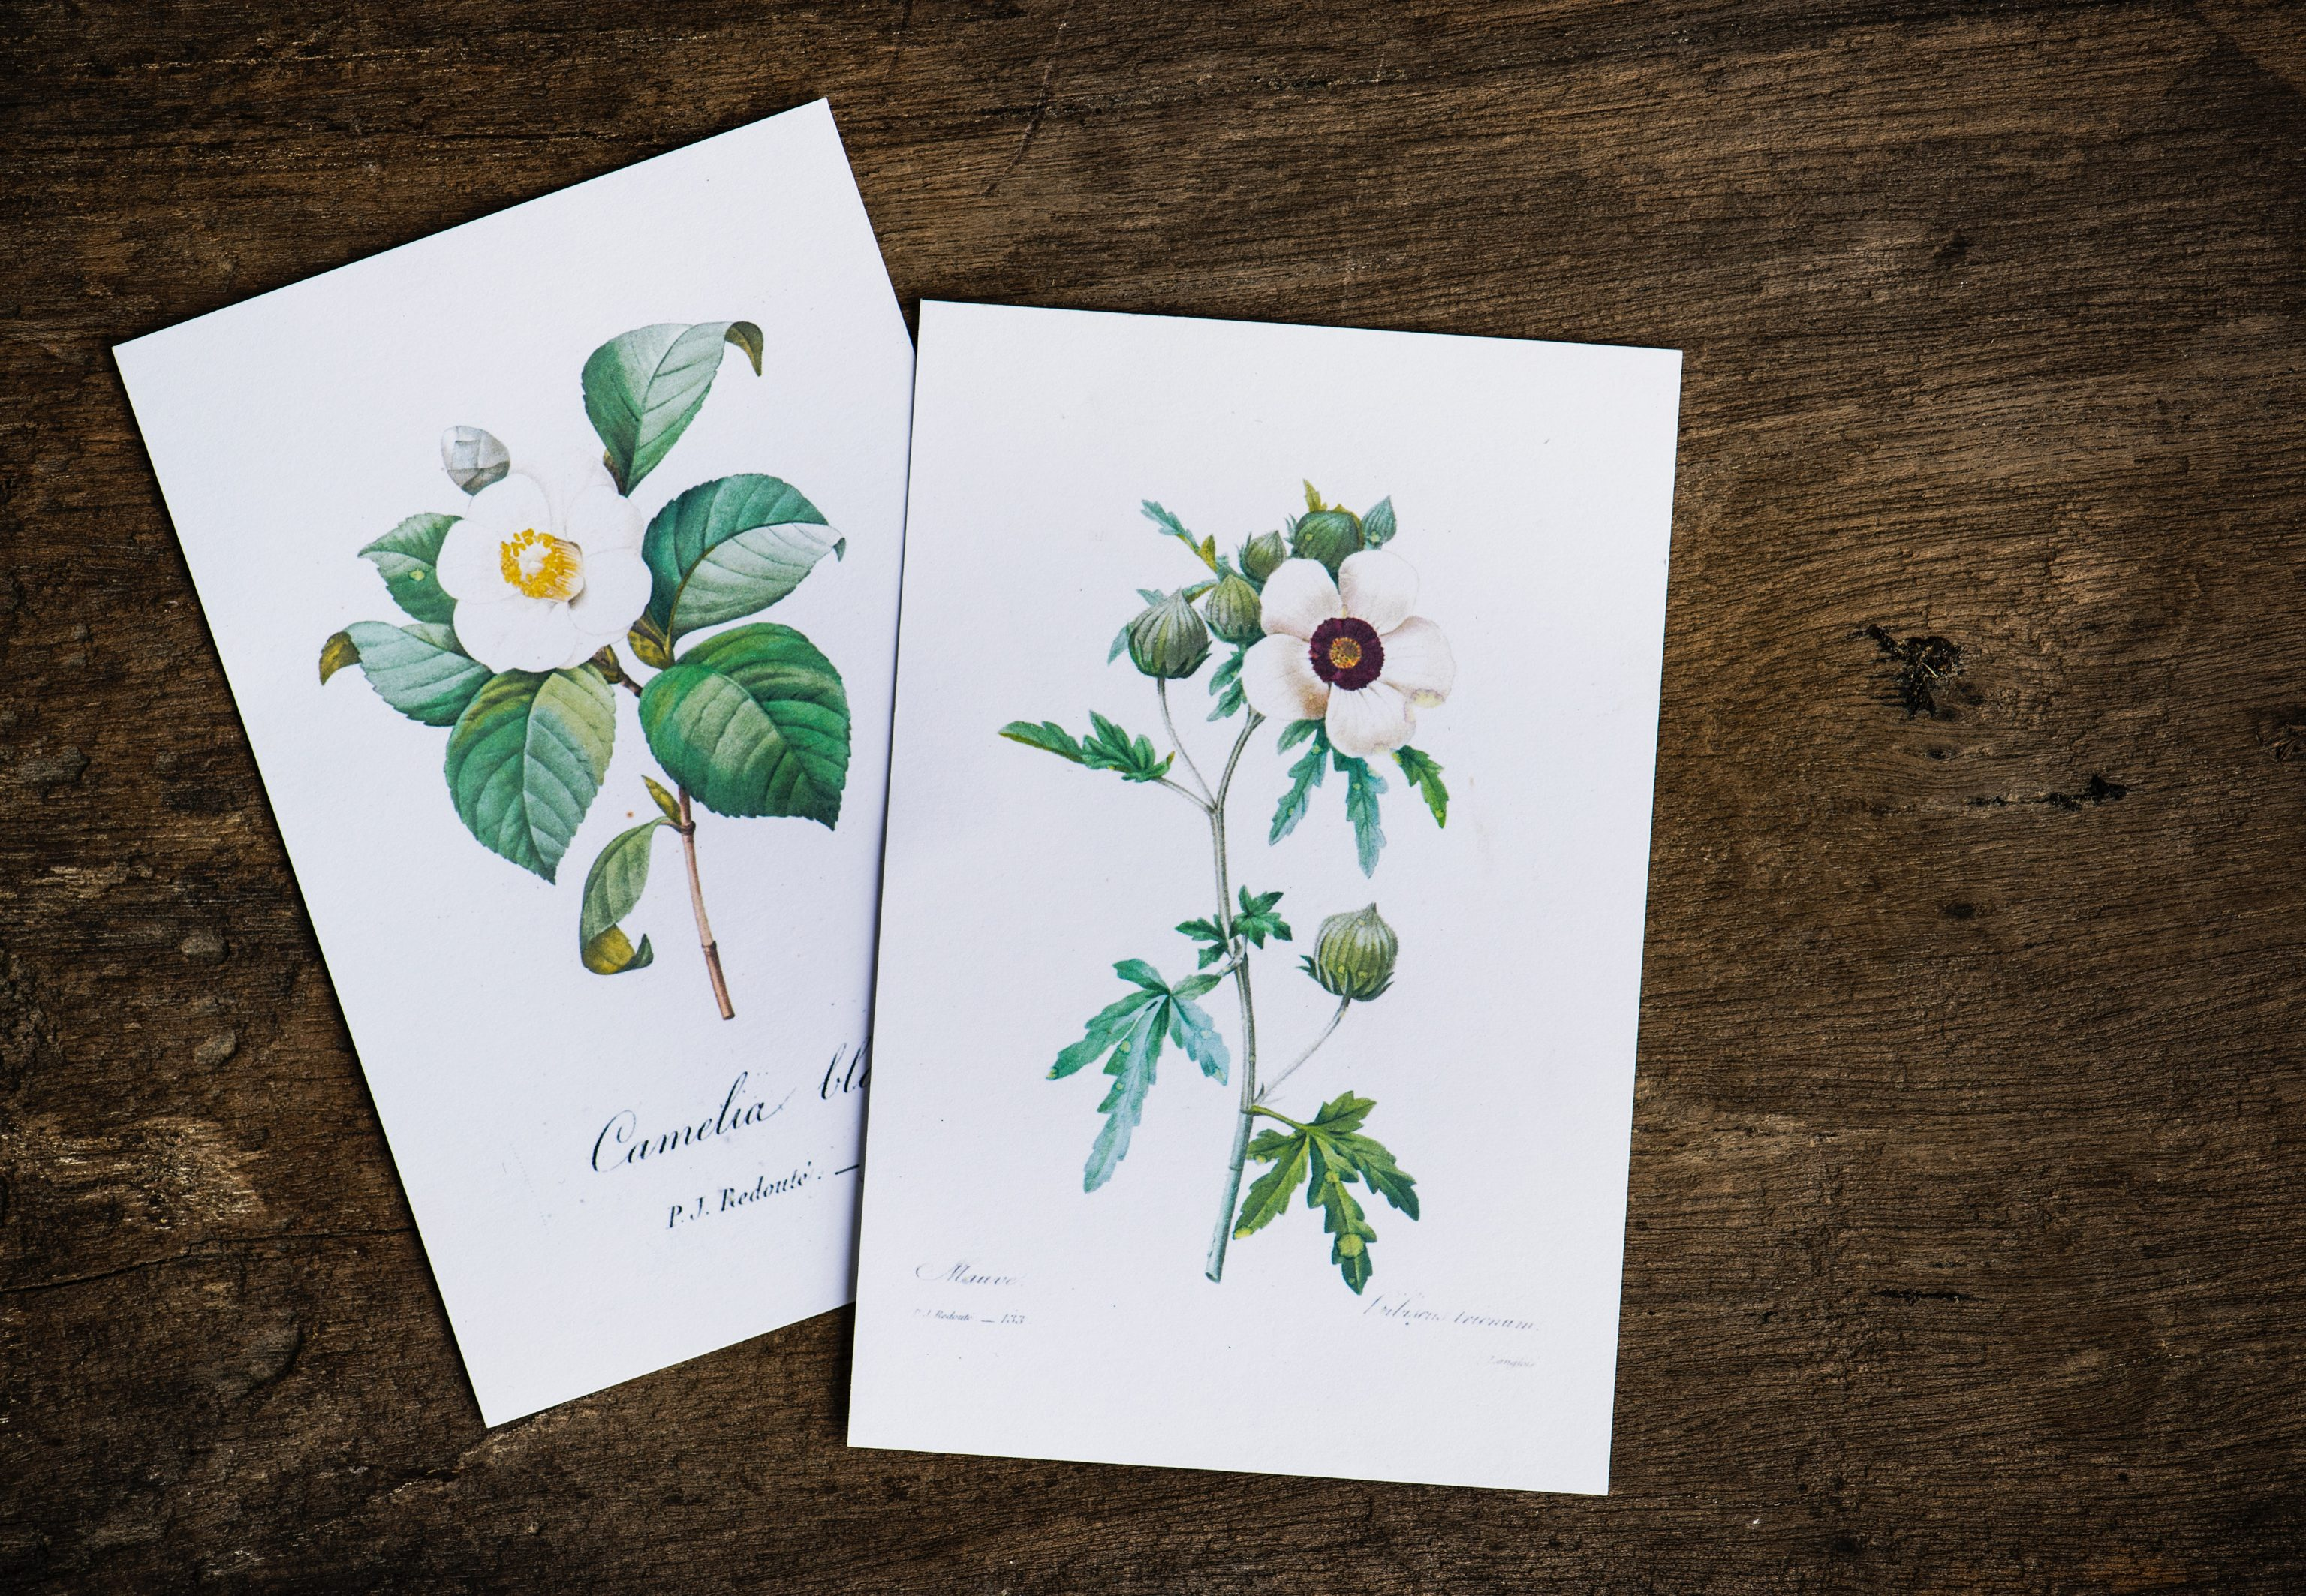 two botanical prints lying side by side